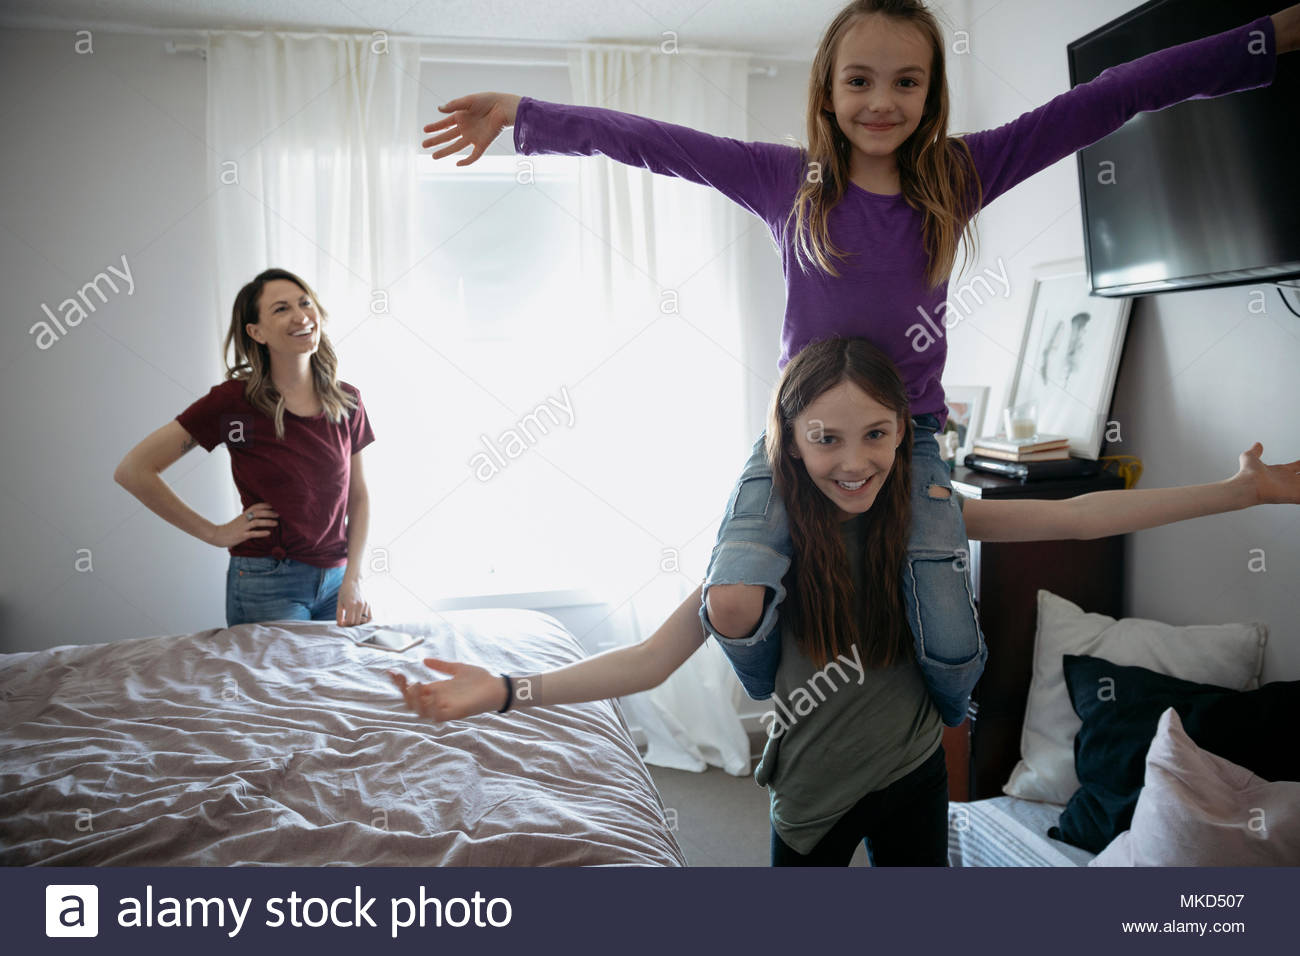 Portrait playful girl carrying sister on shoulders in bedroom - Stock Image